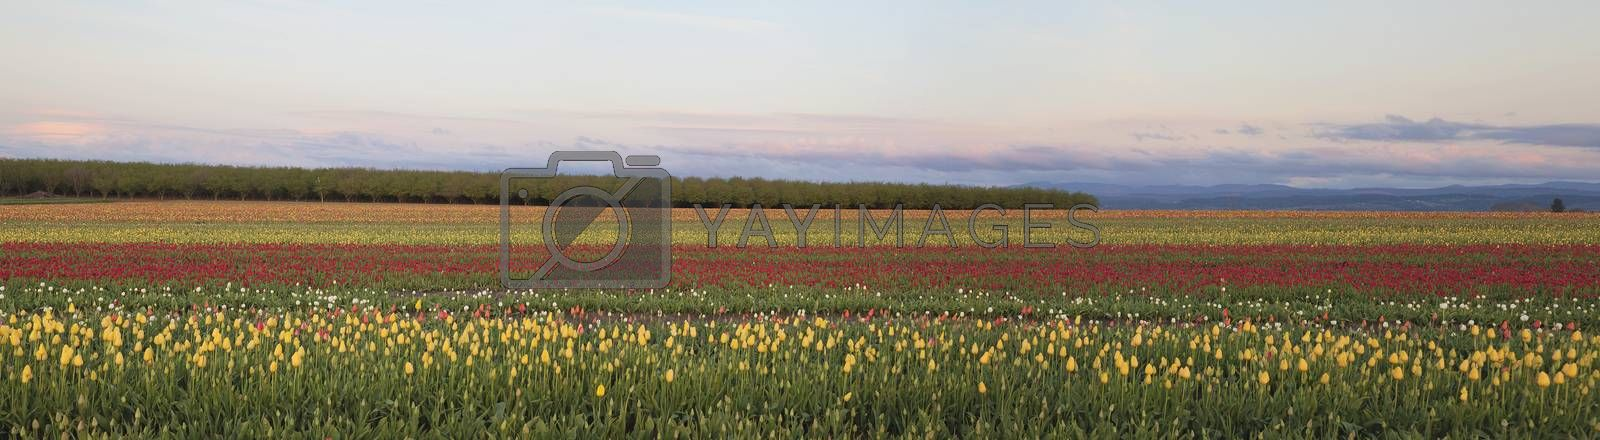 Royalty free image of Field of Tulips Panorama by jpldesigns